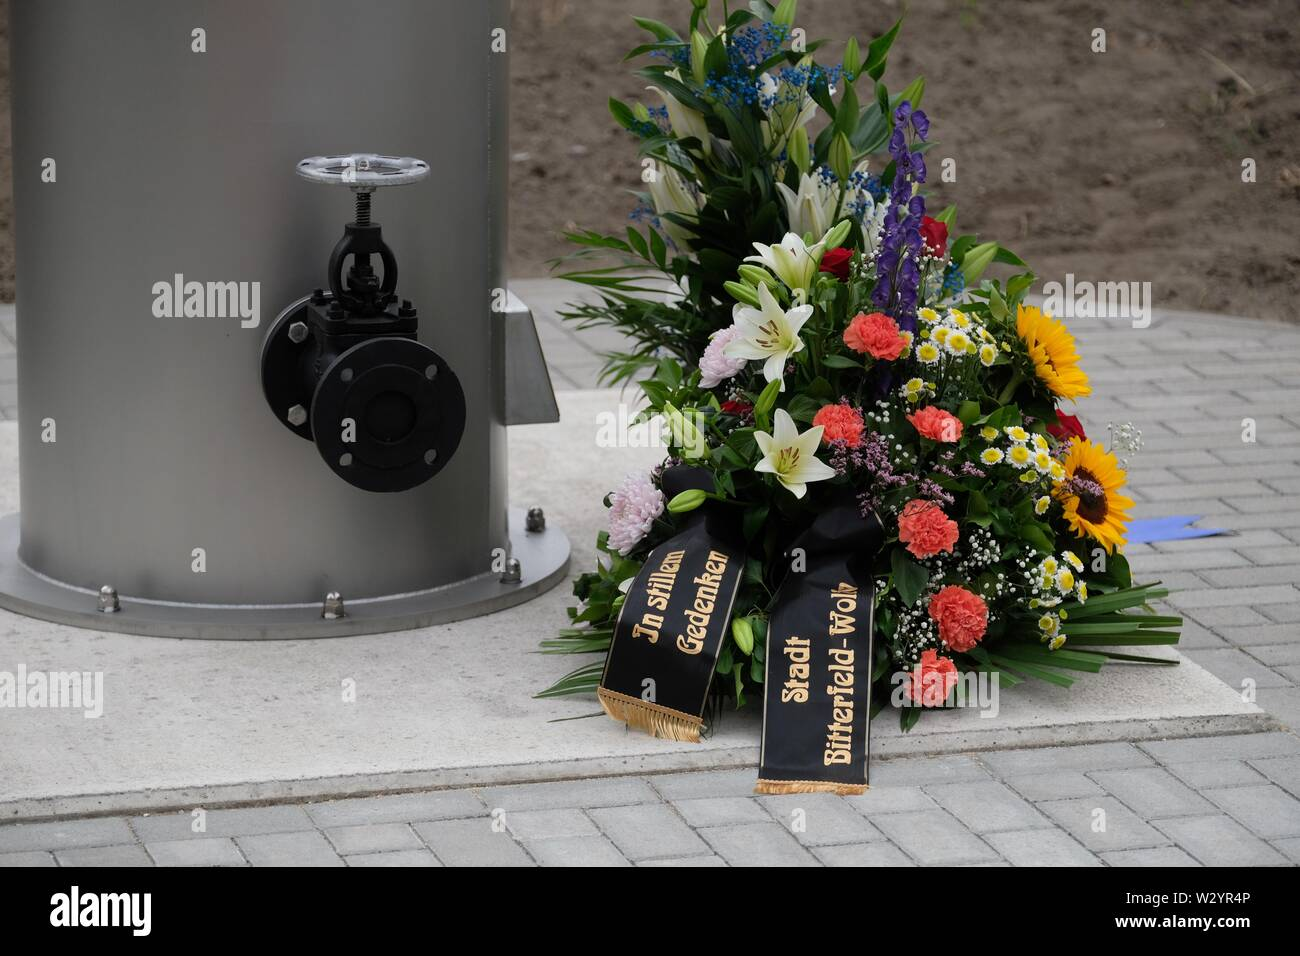 Bitterfeld Wolfen, Germany. 11th July, 2019. A wreath lies at a memorial ceremony at the chemical park at a monument. A stele commemorates the victims of the chemical accident of 11.07.1968, when 40 people died and more than 240 were injured. Credit: Sebastian Willnow/dpa-Zentralbild/ZB/dpa/Alamy Live News - Stock Image